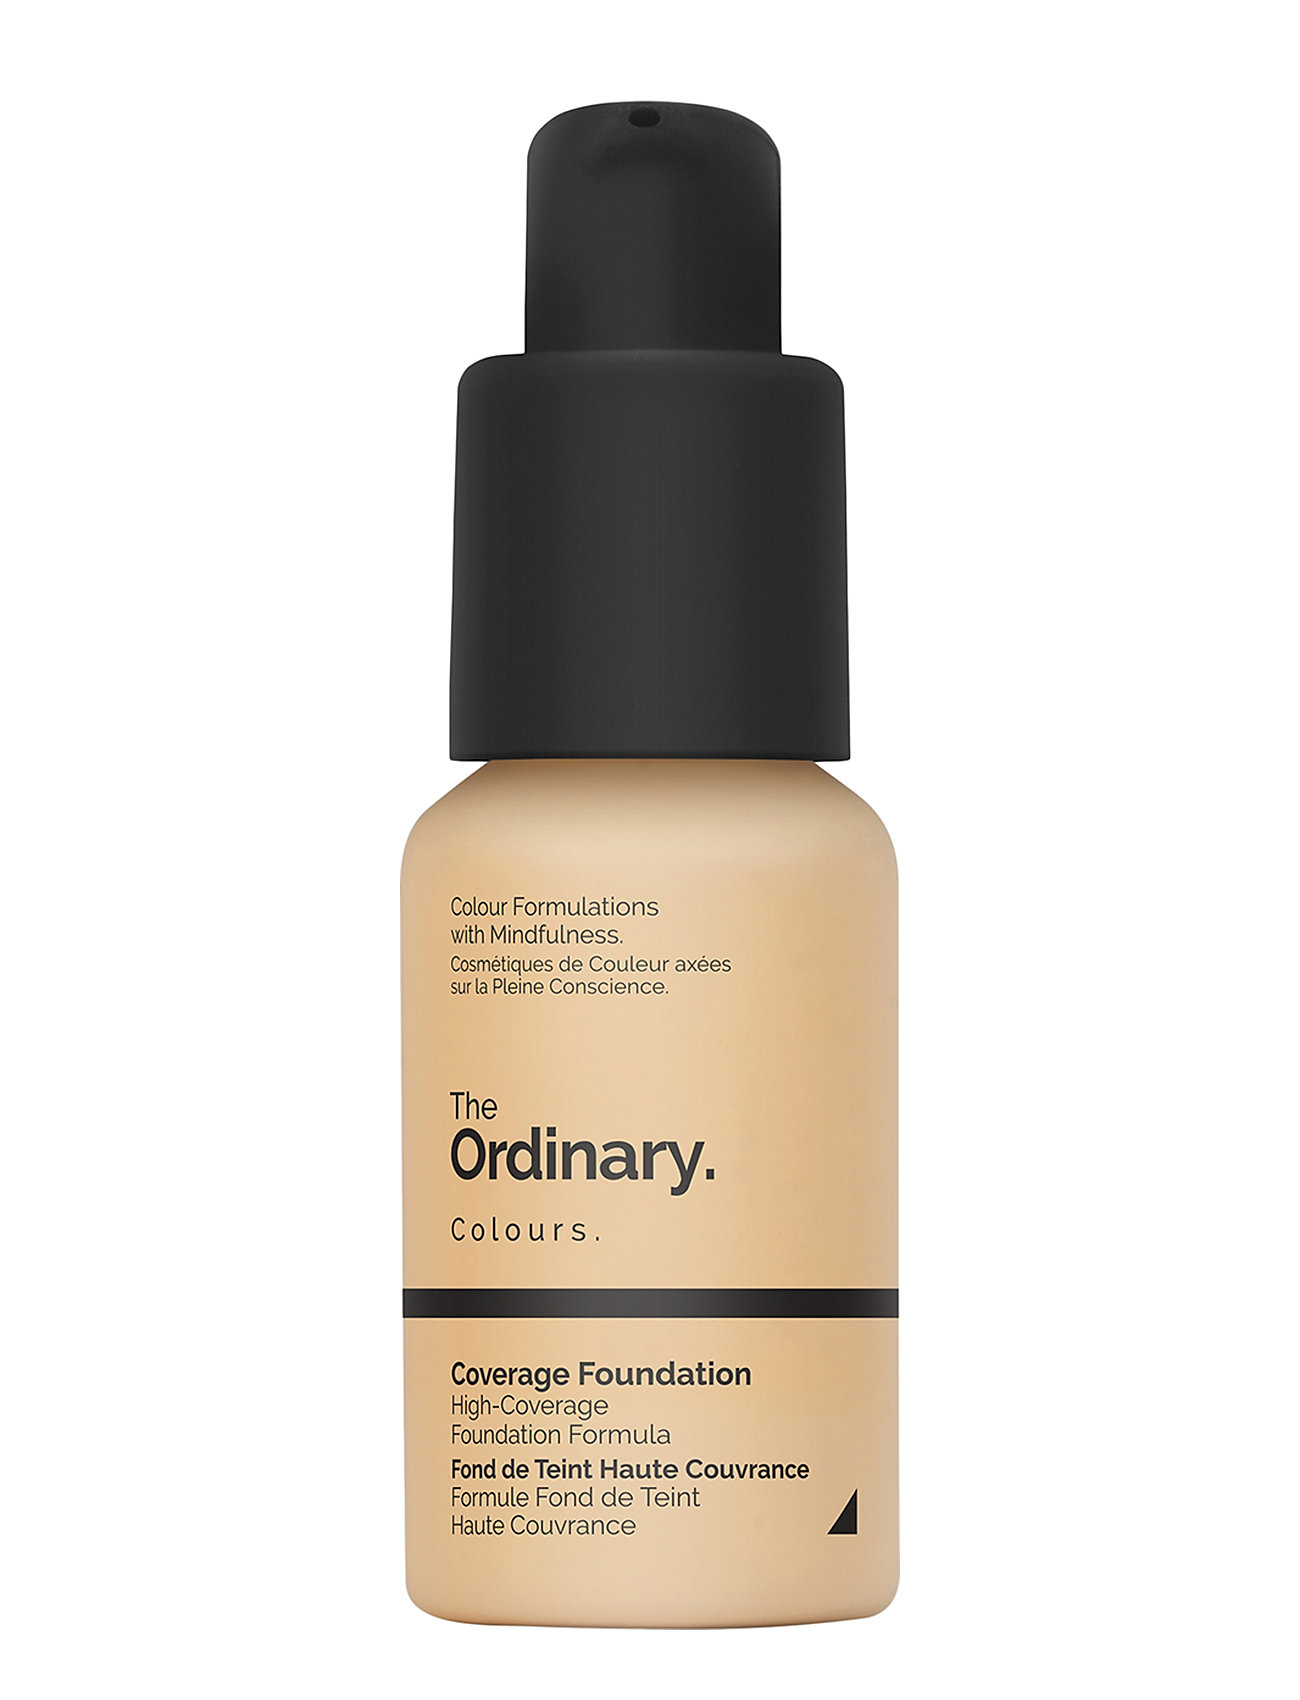 Image of Coverage Foundation 2.1 P Medium Pink Foundation Makeup The Ordinary (3285791563)